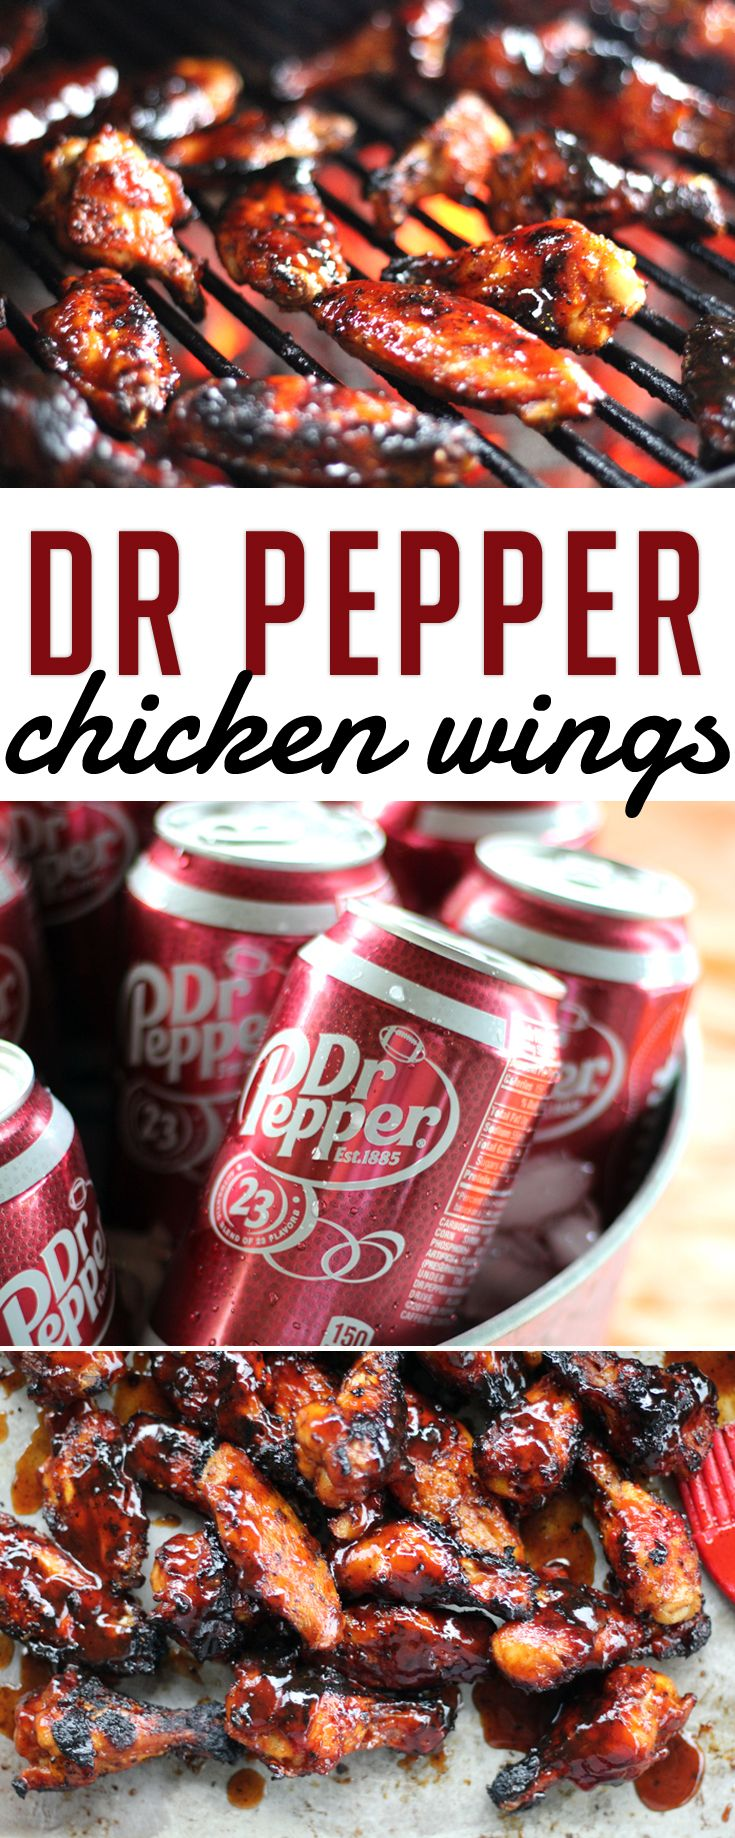 Our game day inspired recipe? Sweet, sticky and spicy chicken wings basted with an easy homemade Dr Pepper barbecue sauce. The unique and bold flavor of Dr Pepper creates a beautiful rich and flavorful wing sauce.  #ad #GrillGating #GrillGatingHero